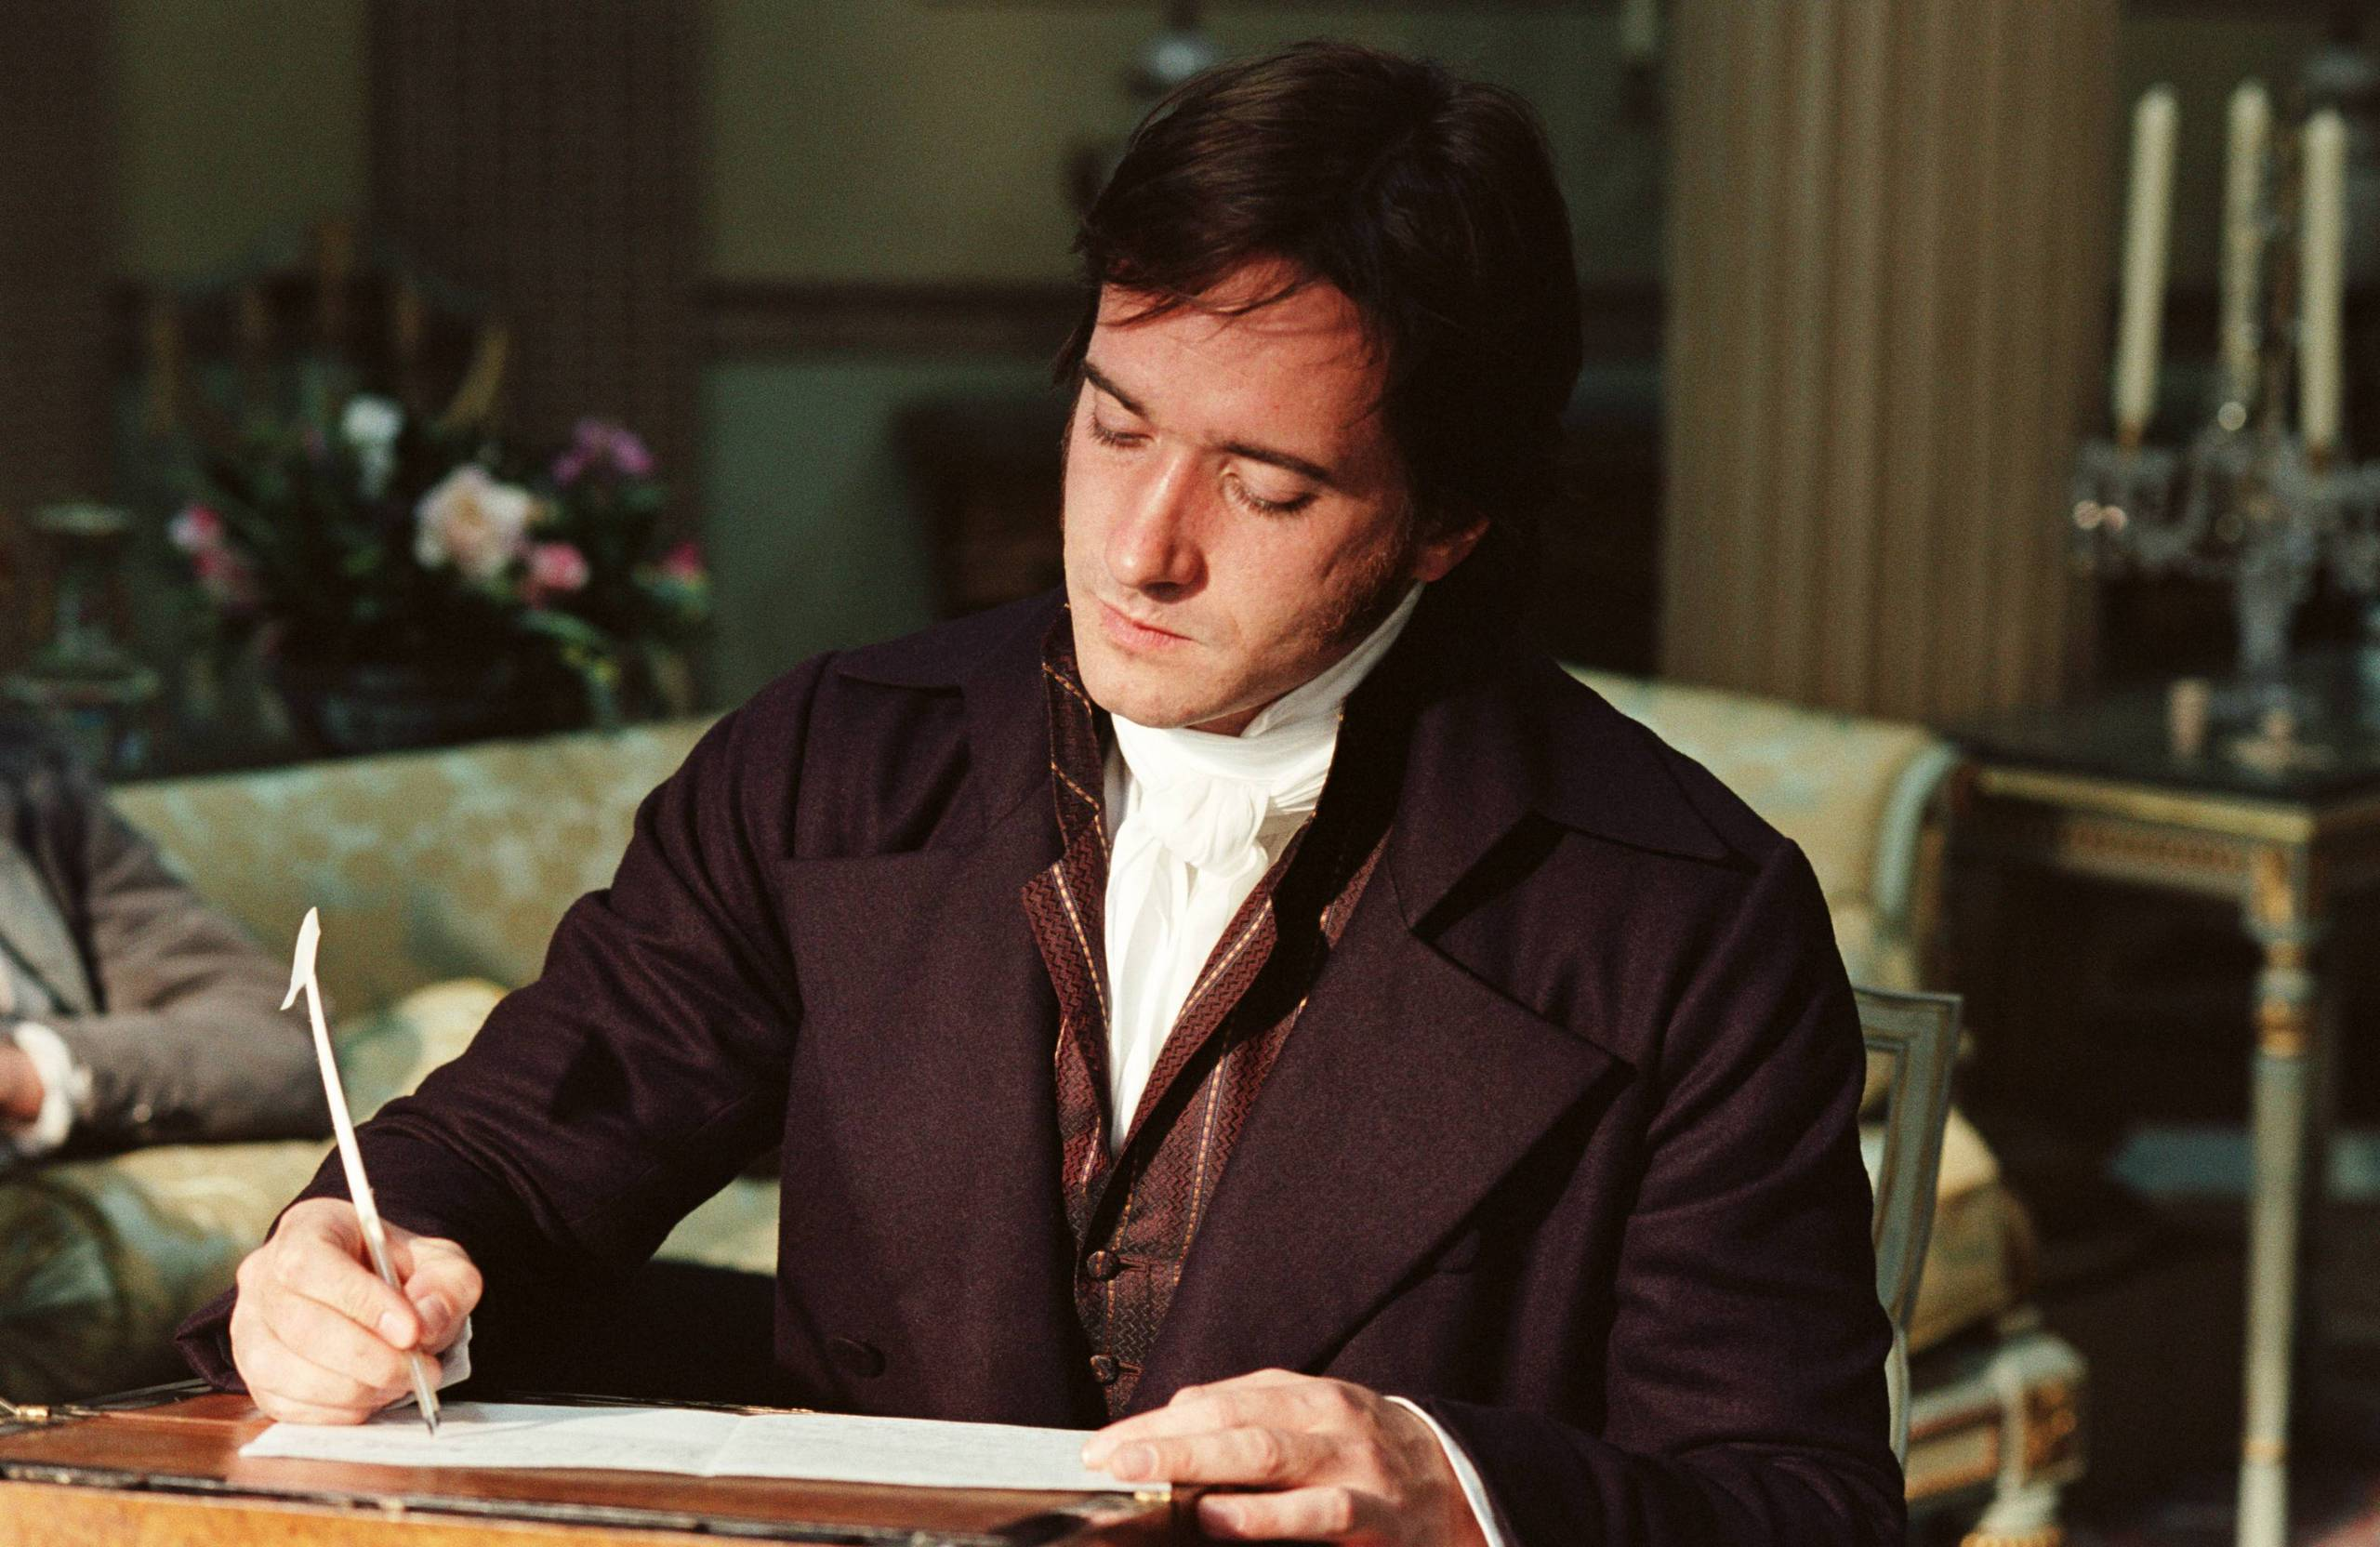 mr darcy essay Everything you ever wanted to know about mr darcy in pride and prejudice, written by masters of this stuff just for you.